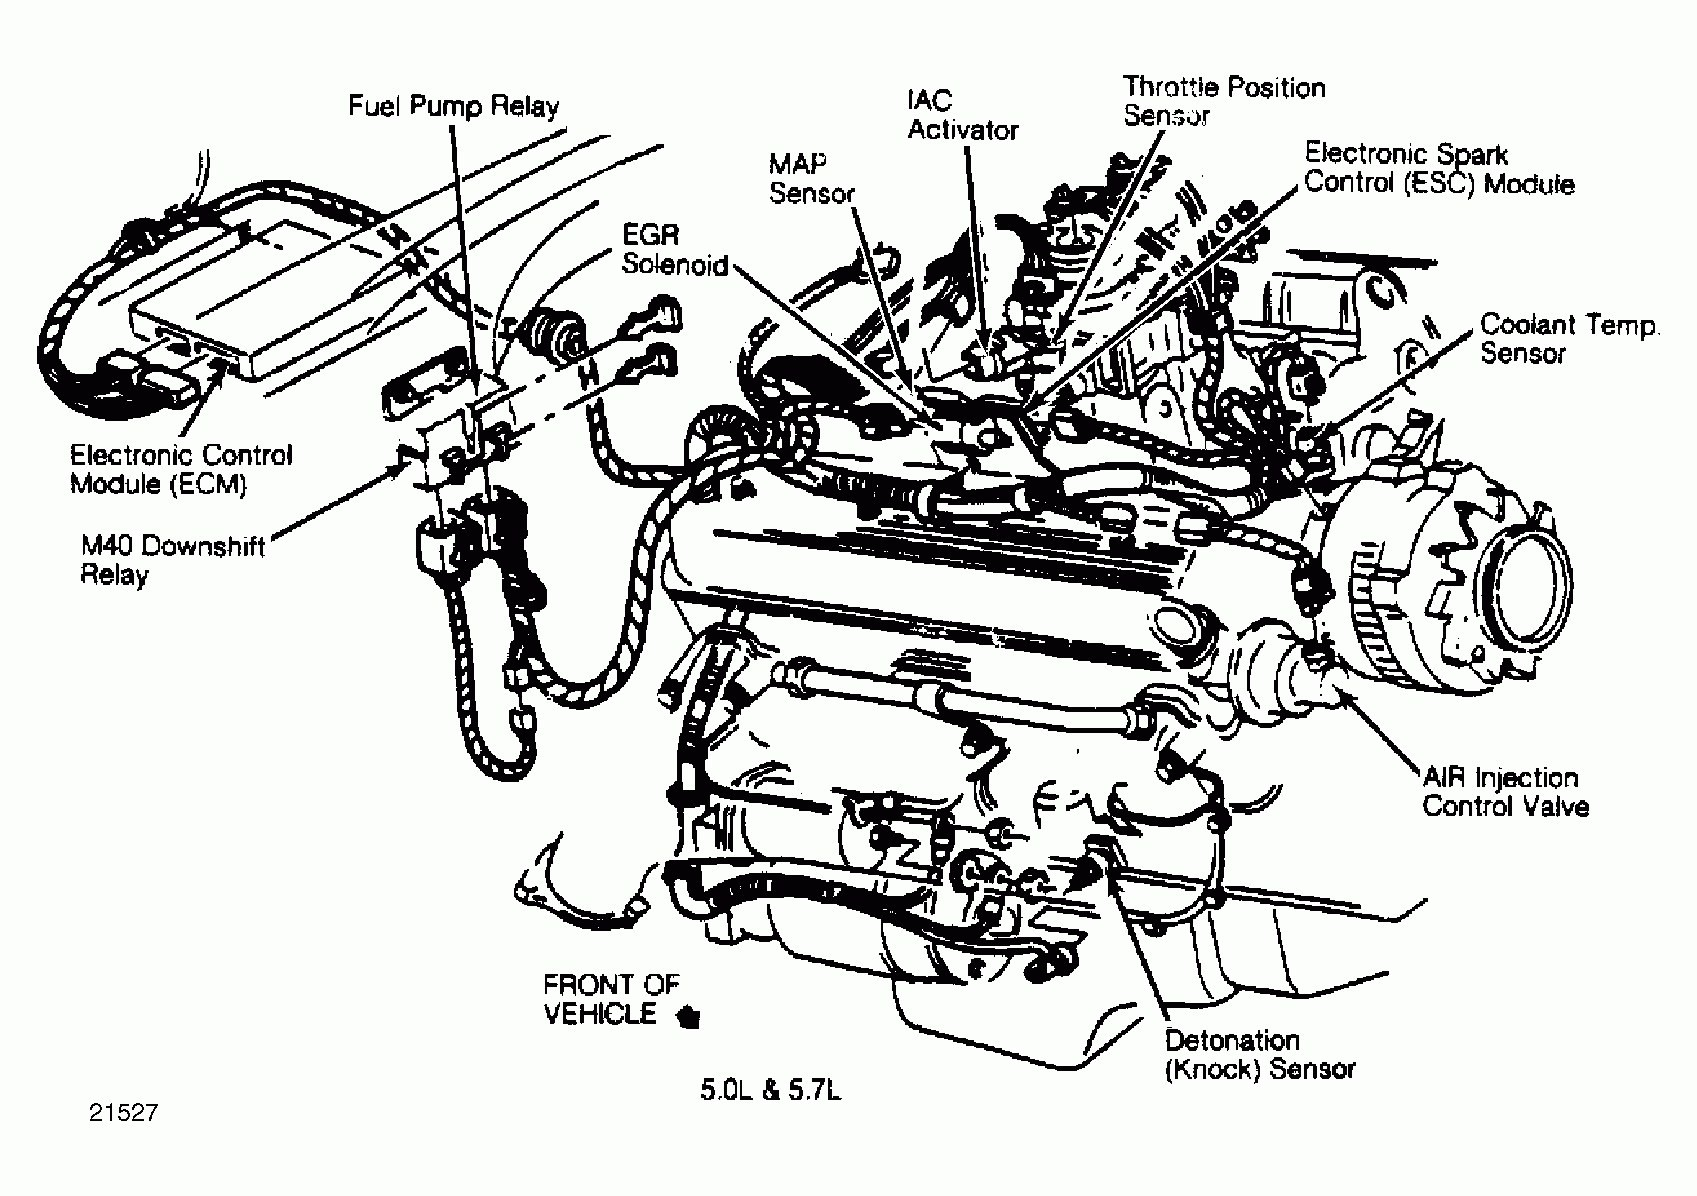 Small Engine Parts Diagram 350 Chevy Engine Parts Diagram Wiring Diagrams Konsult Of Small Engine Parts Diagram